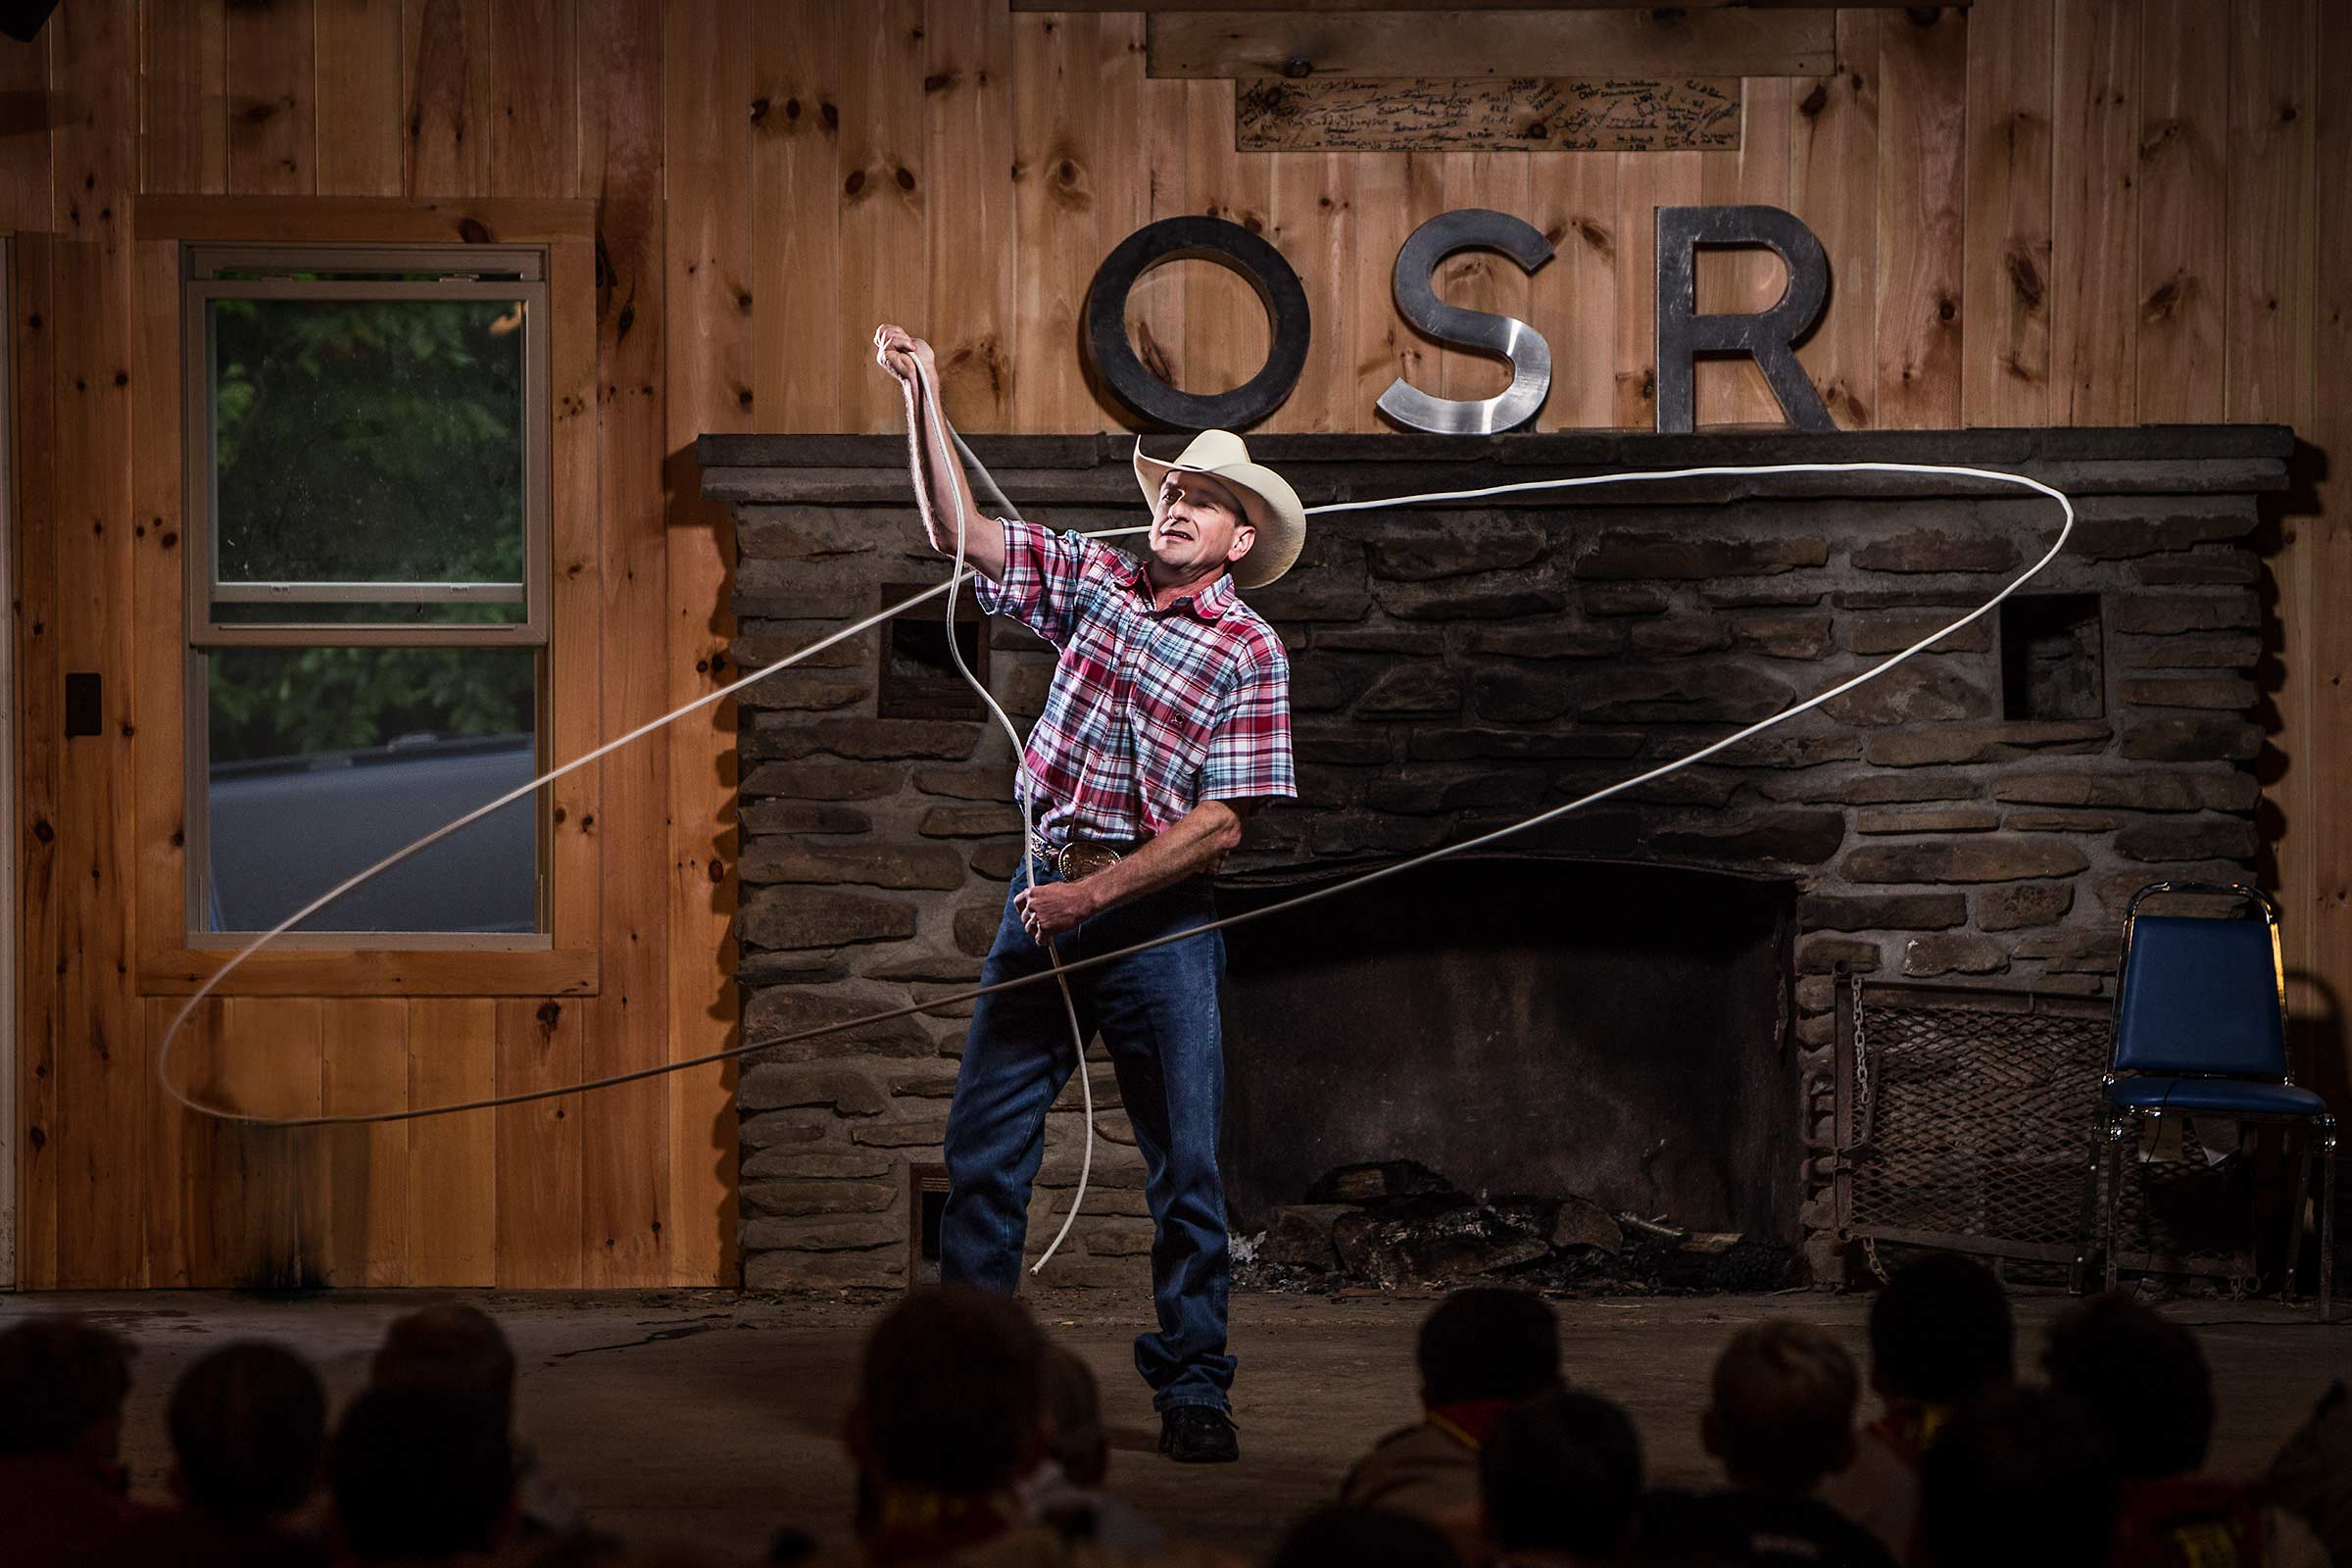 professional rope wrangler twirling rope overhead at boyscout camp in New York